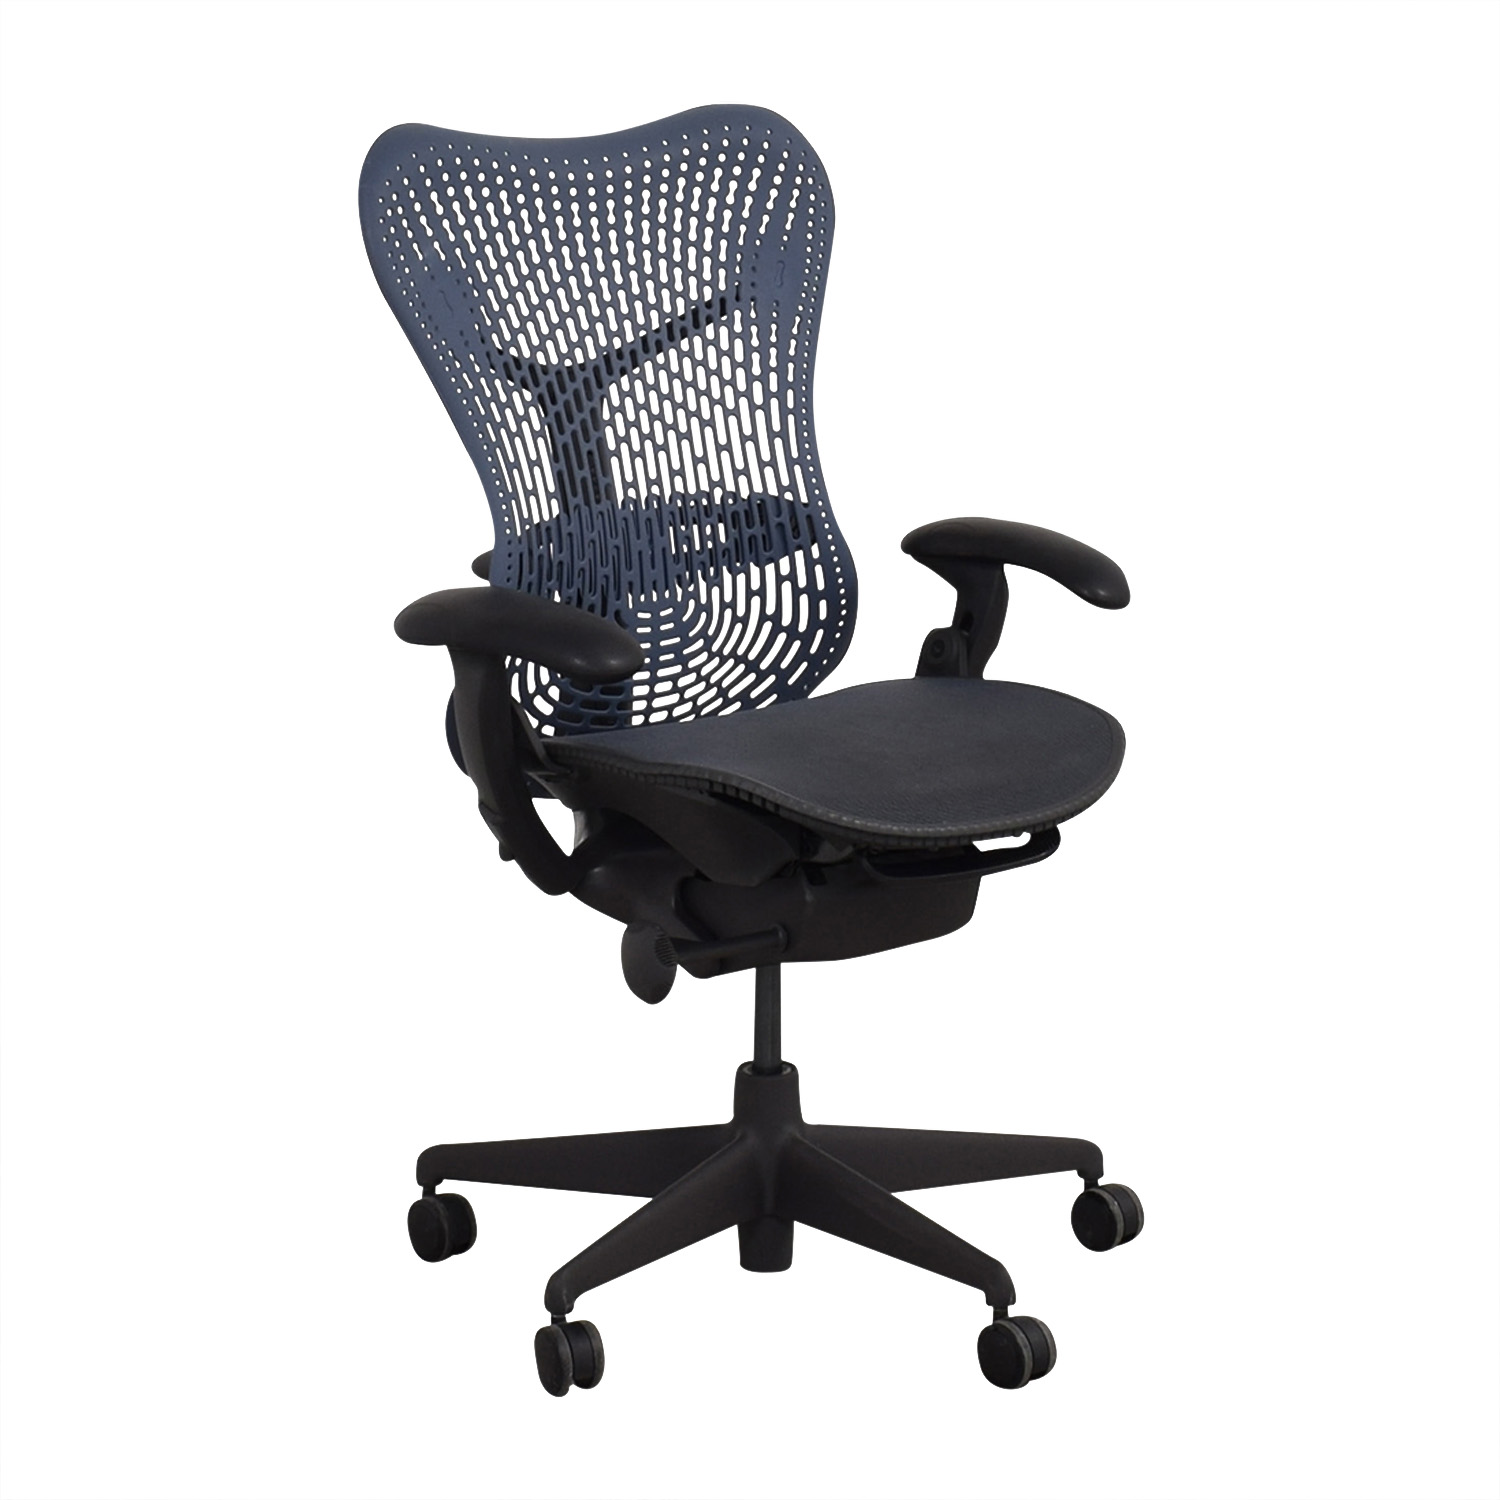 Herman Miller Herman Miller Aeron Office Chair discount